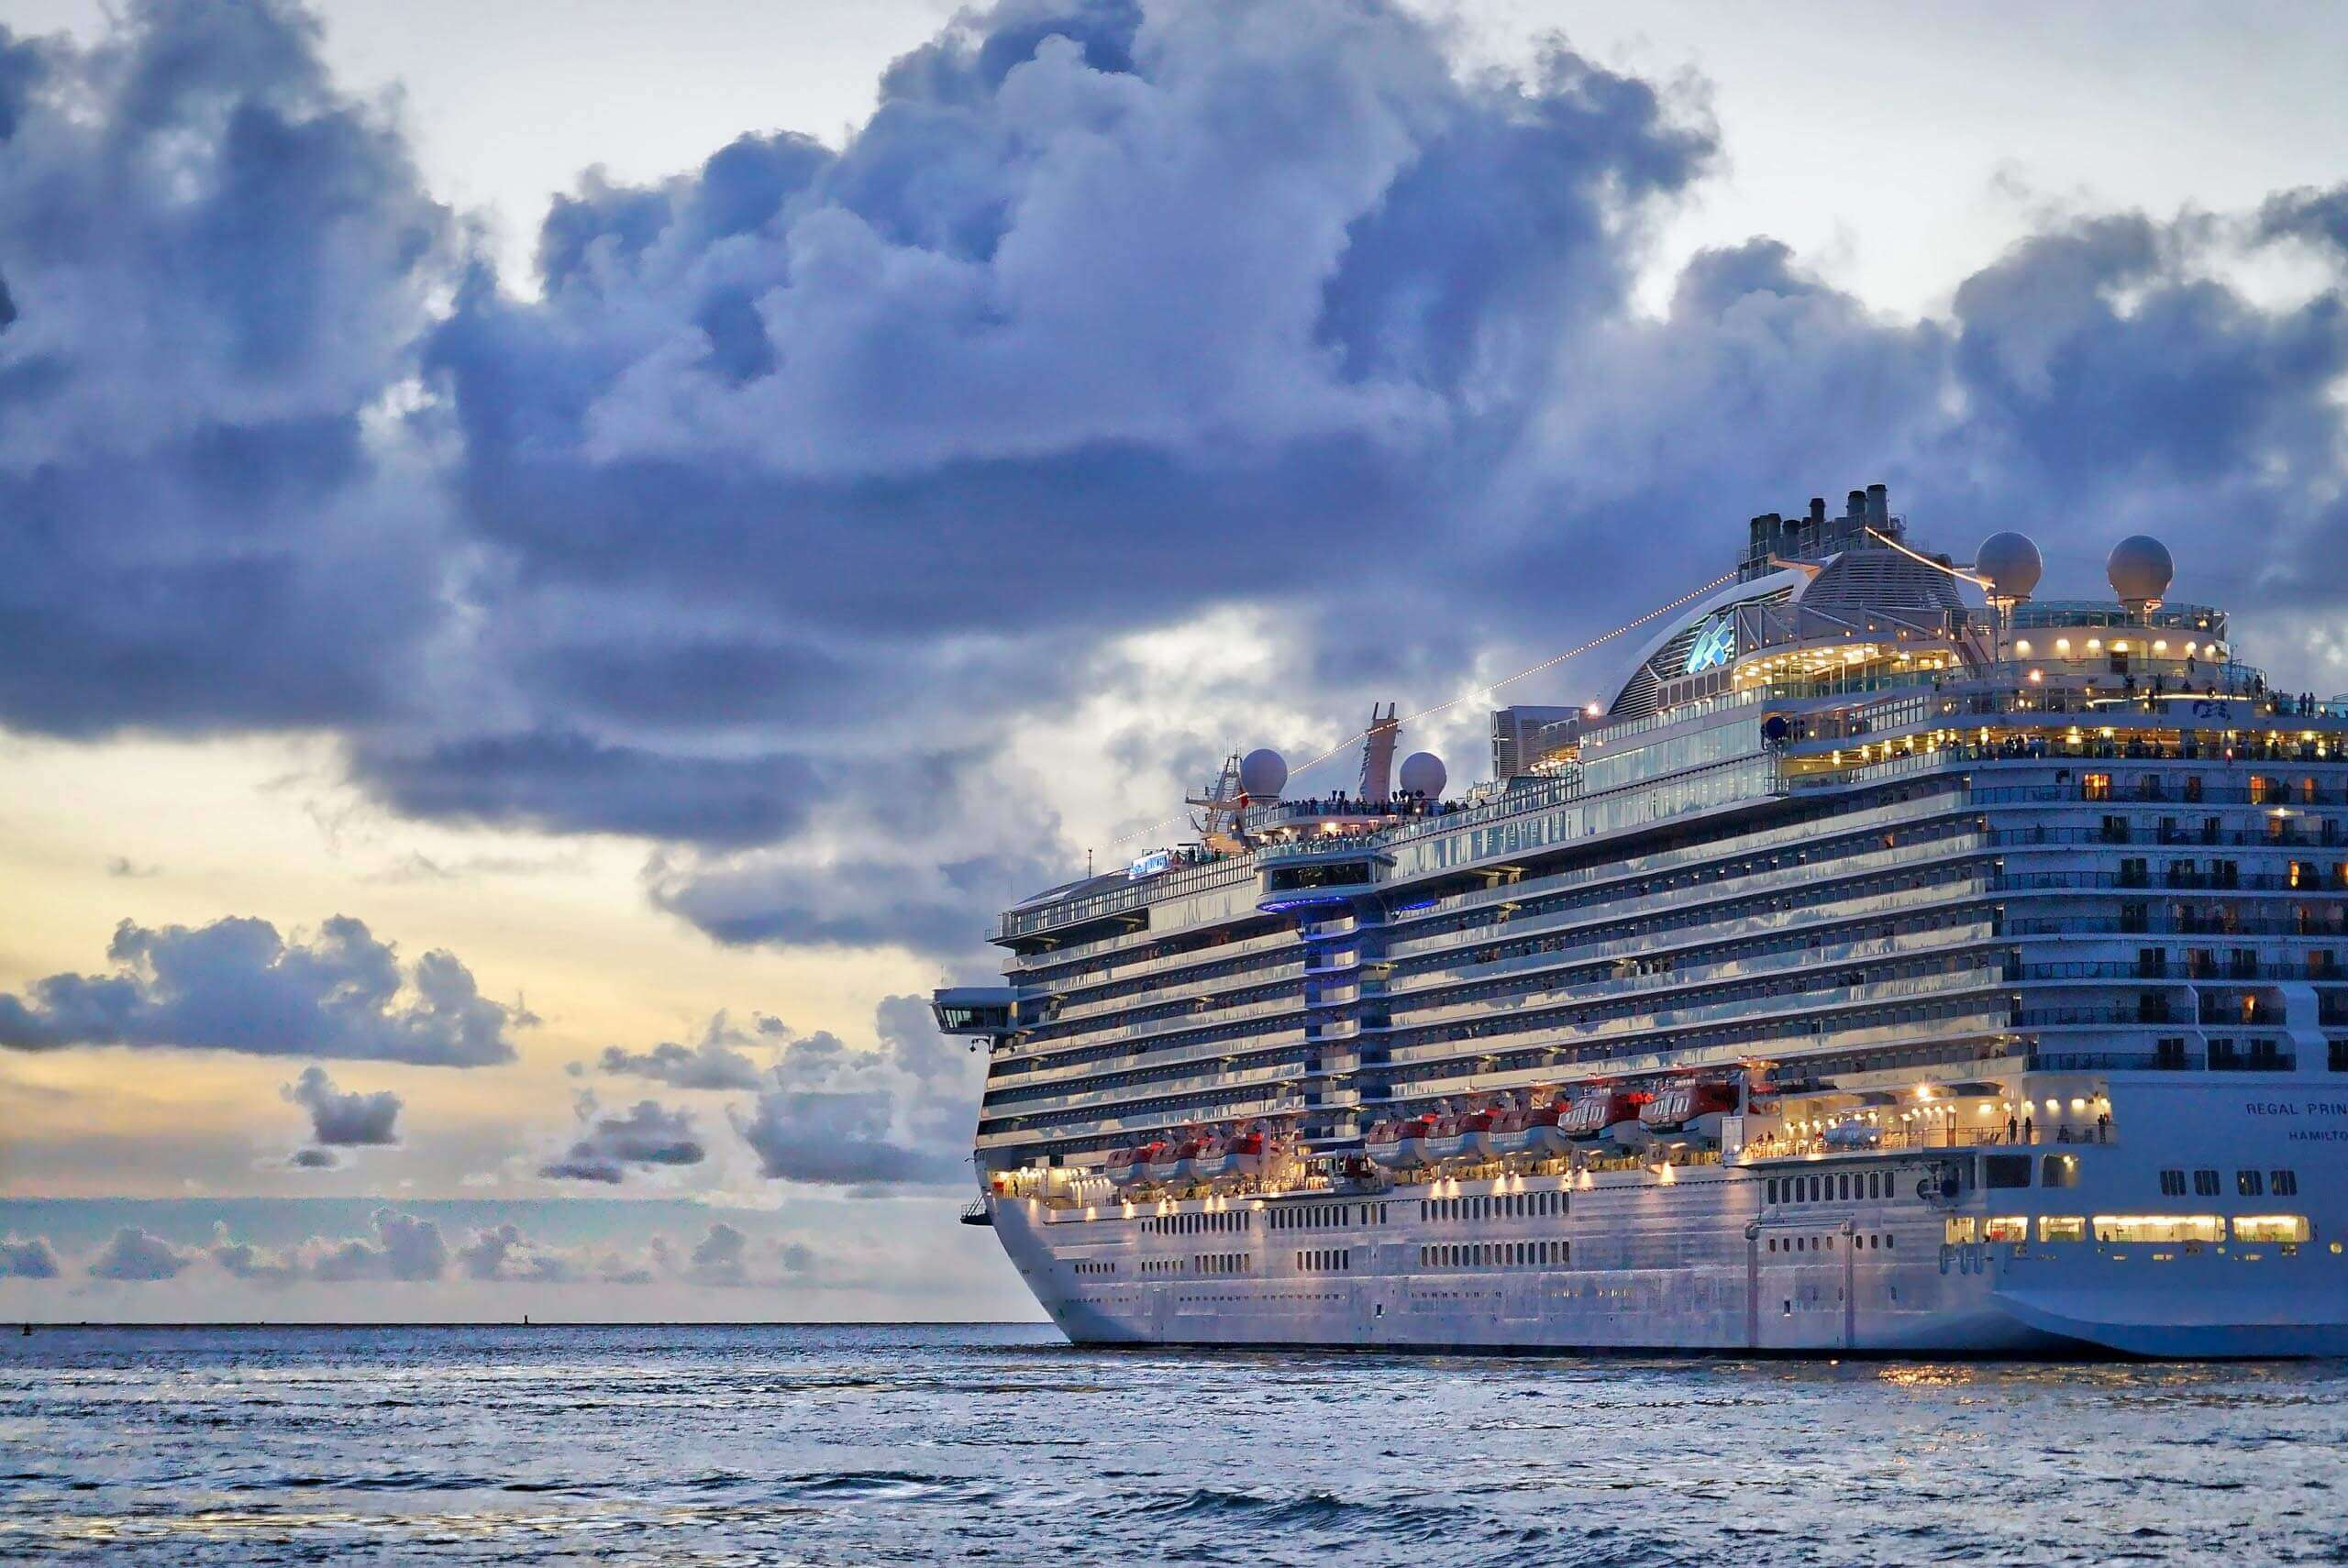 Large cruise ship sailing on the ocean. Photo by Peter Hansen on Unsplash